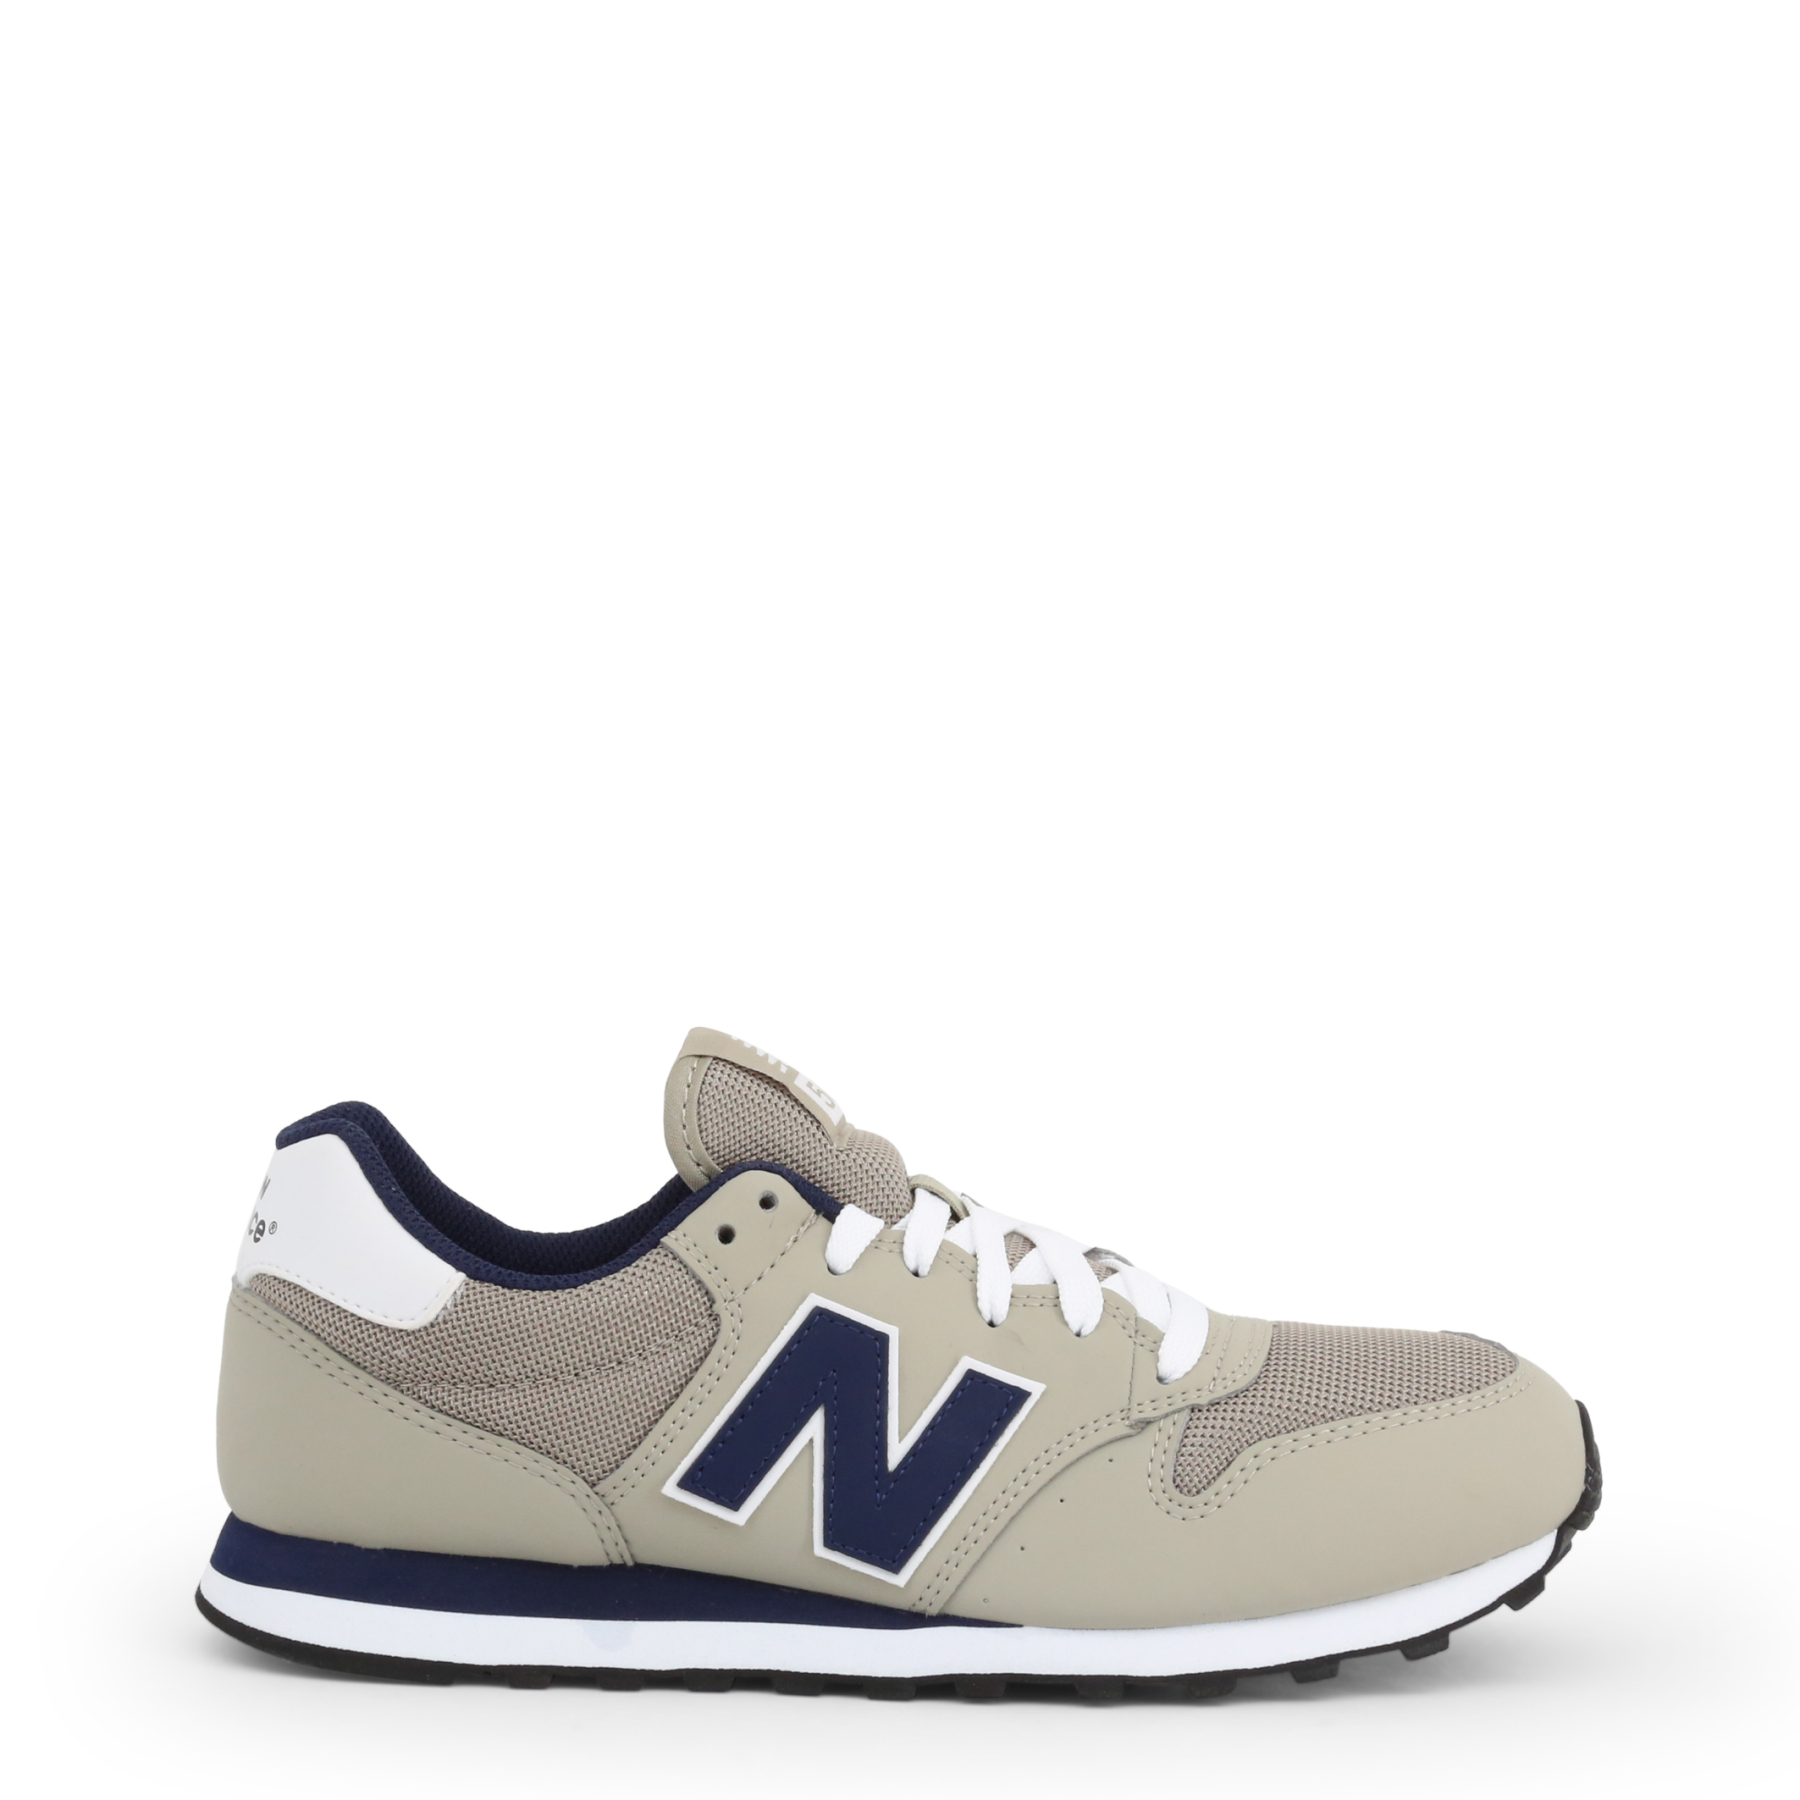 Sneakers for men, mens footwear, Sneakers or sports brand New Balance - GM500 image